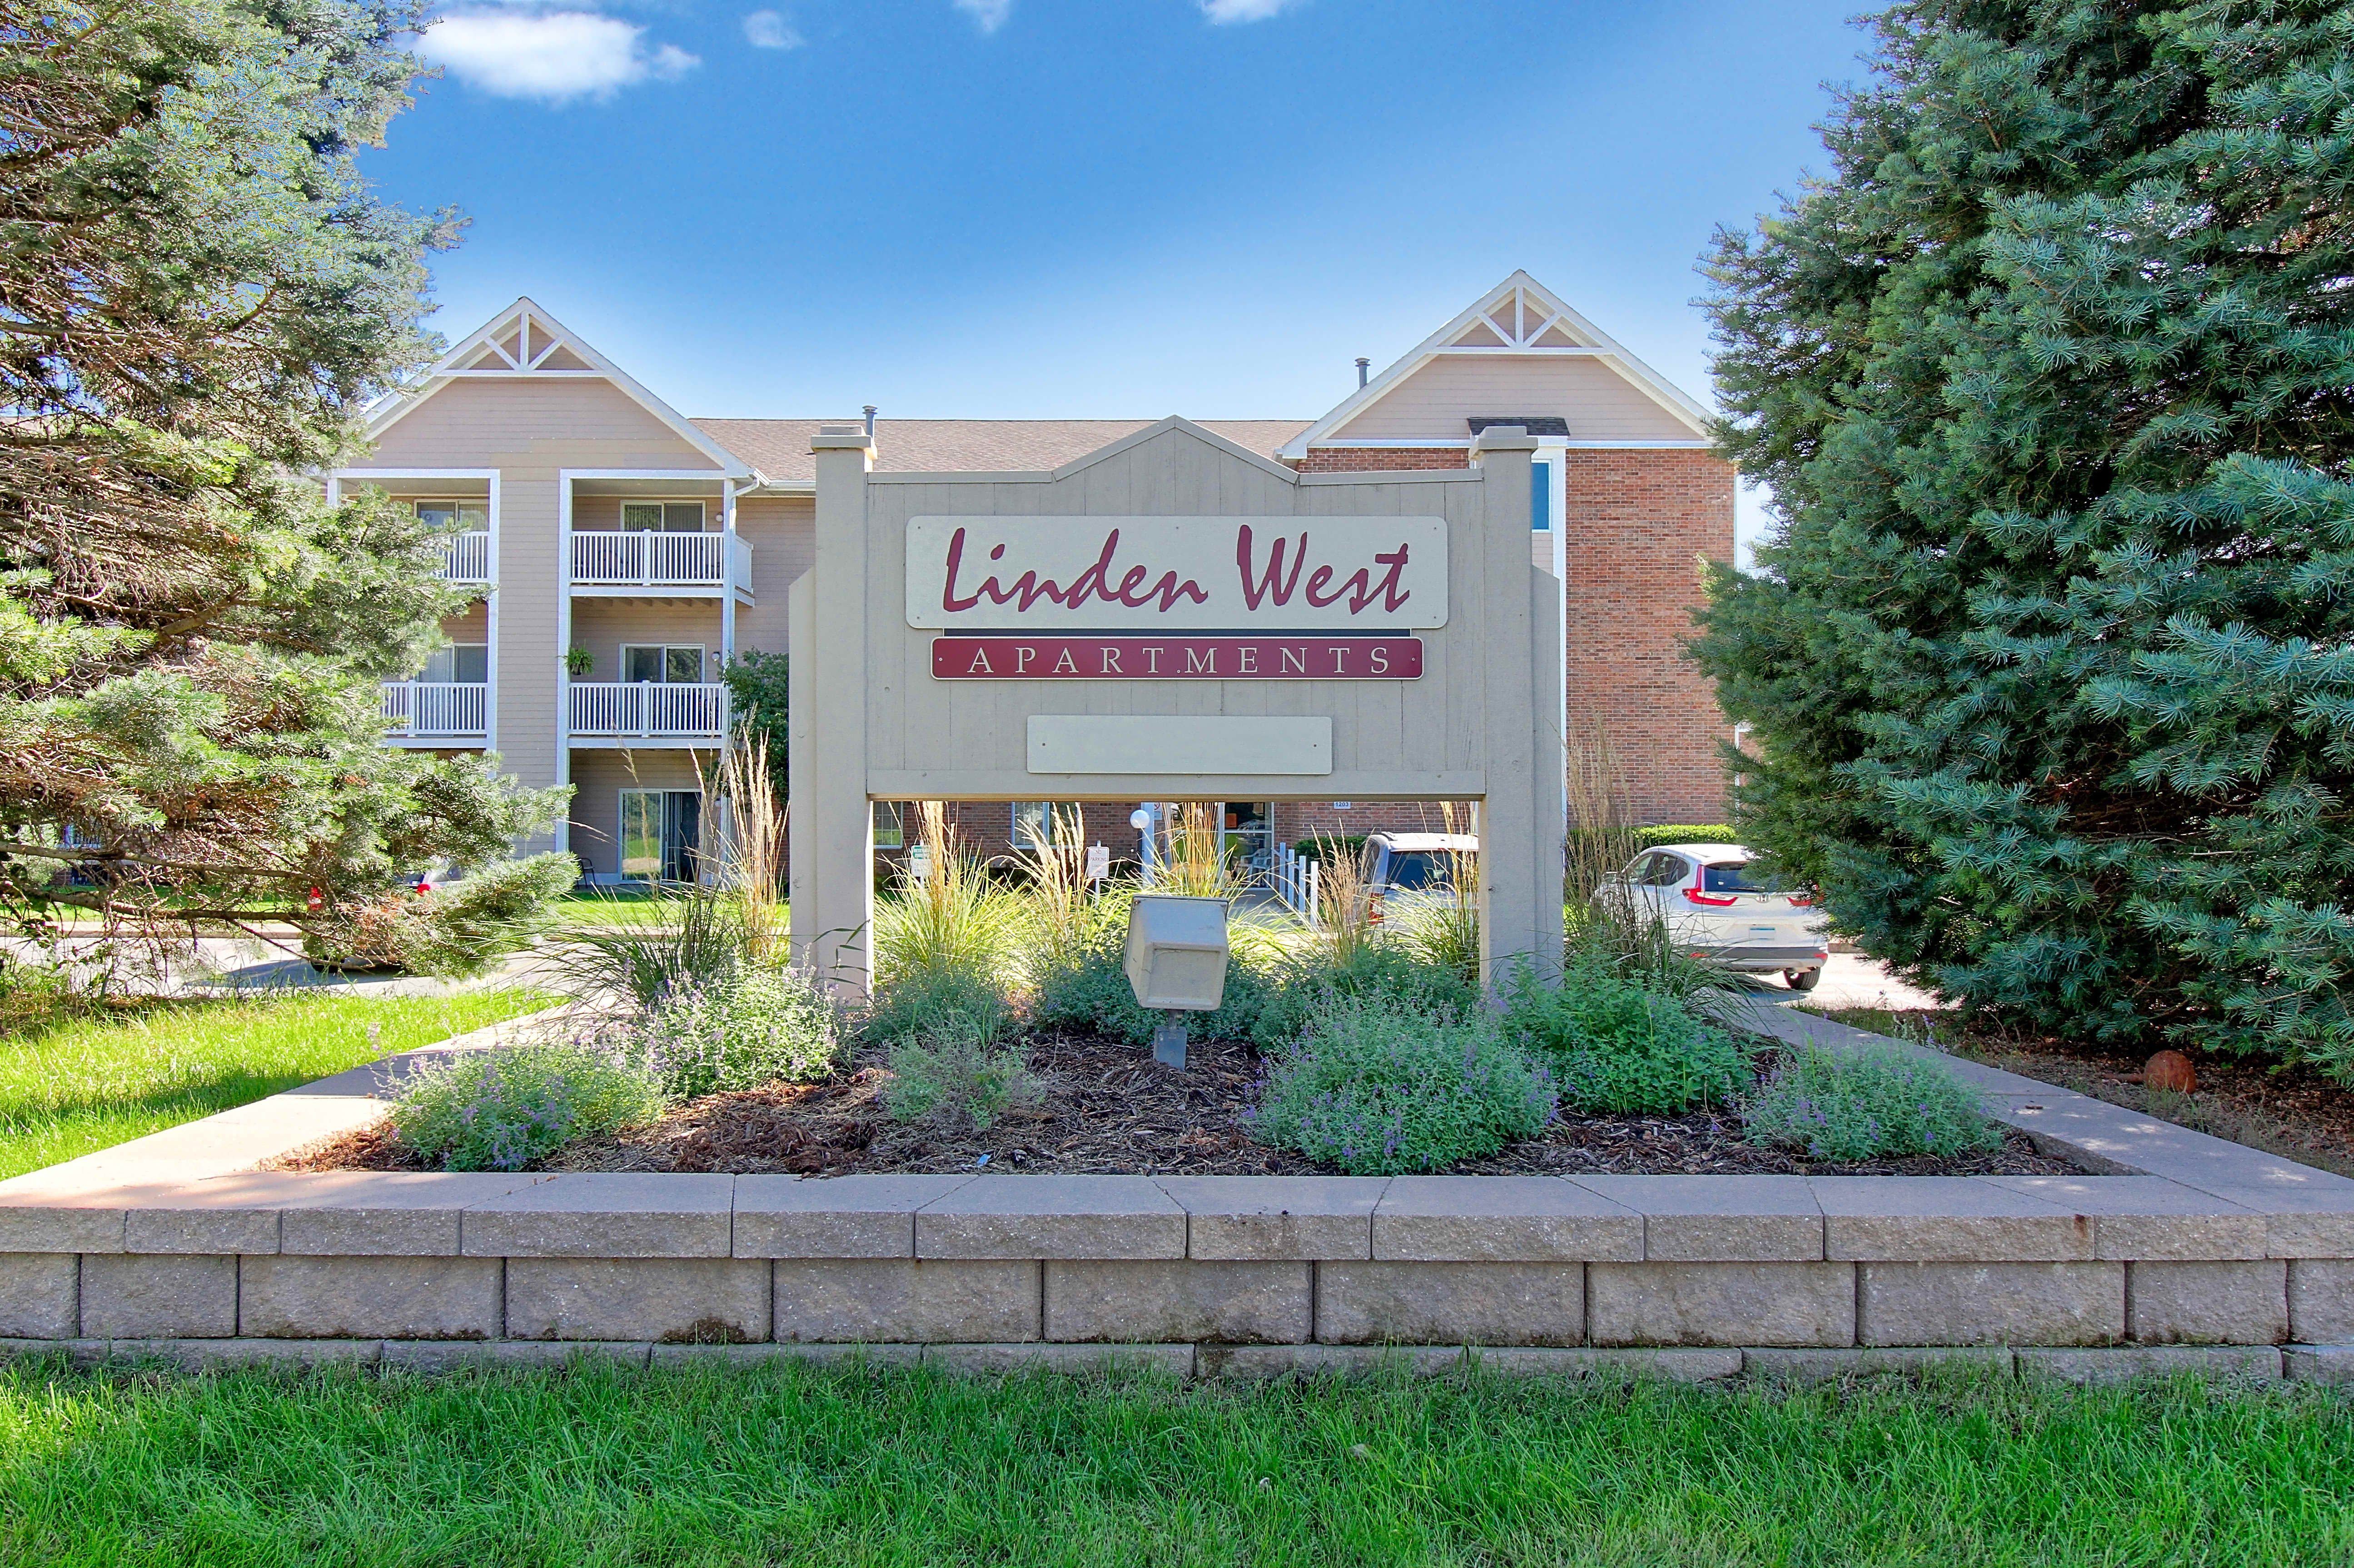 Apartments Near Simpson Linden West Apartments for Simpson College Students in Indianola, IA